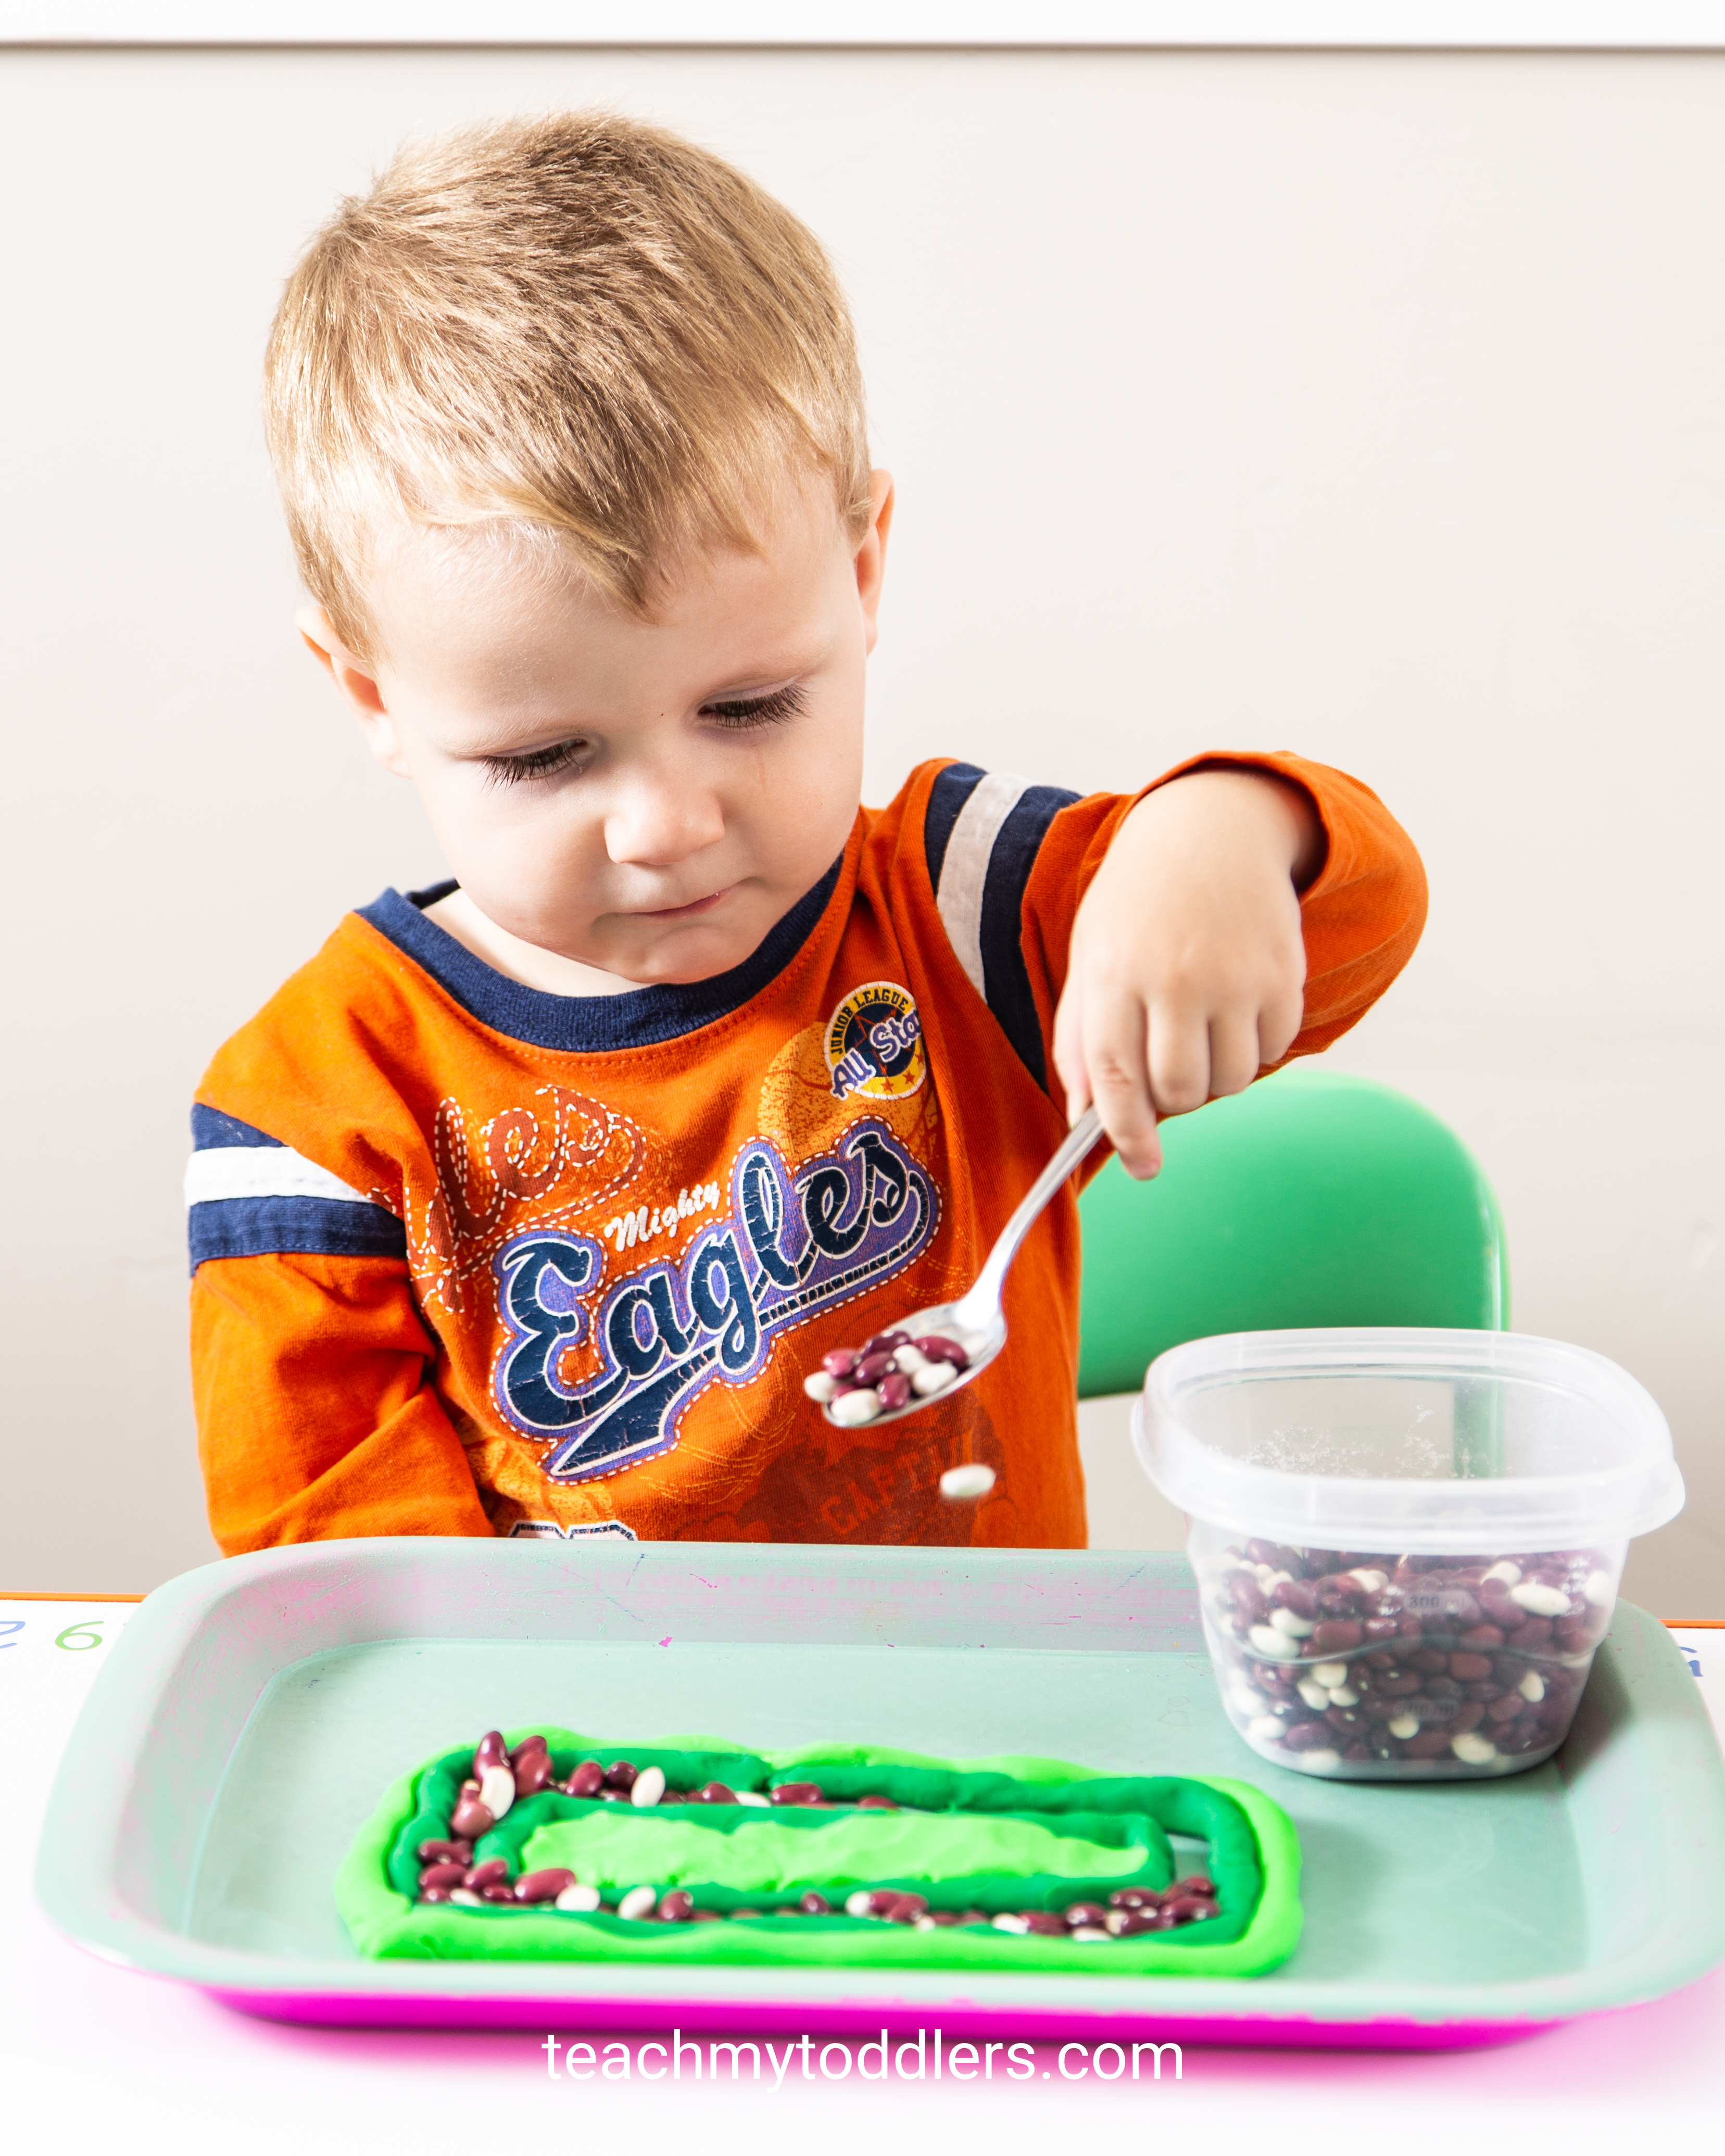 Find out how to use these rectangle trays to teach your toddlers shapes